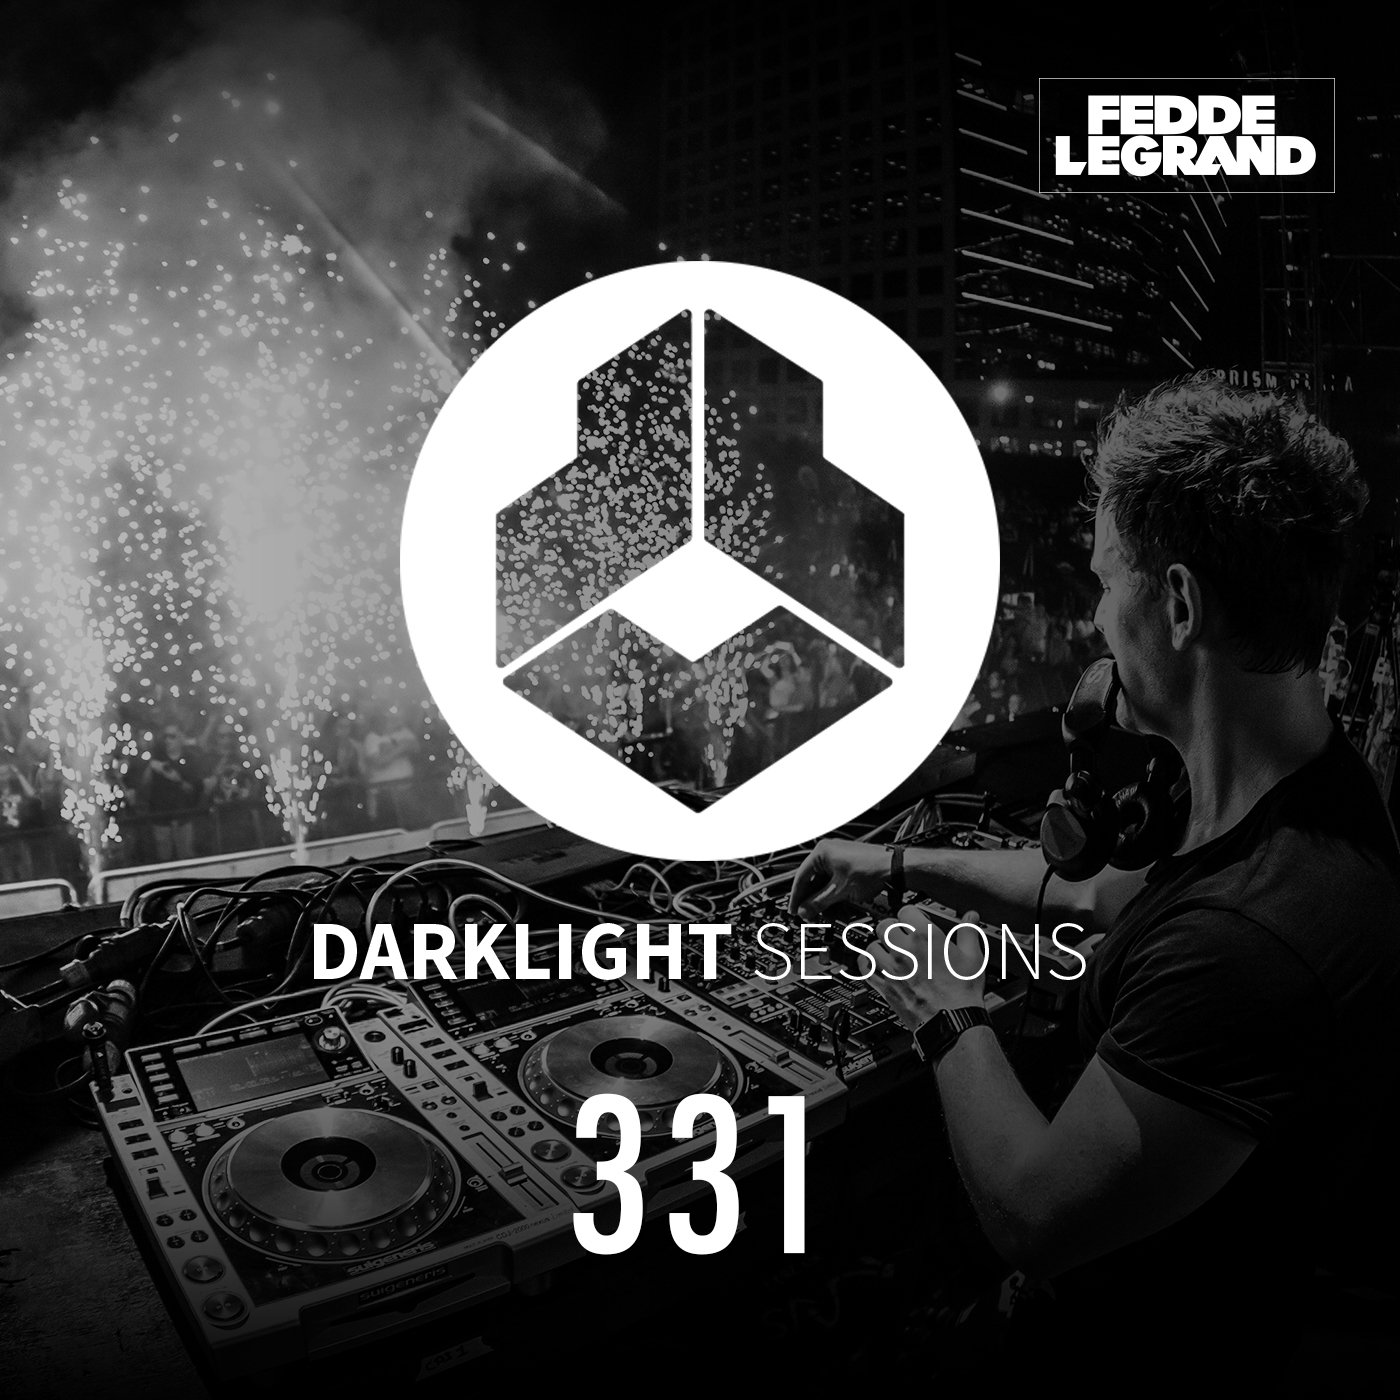 Darklight Sessions 331